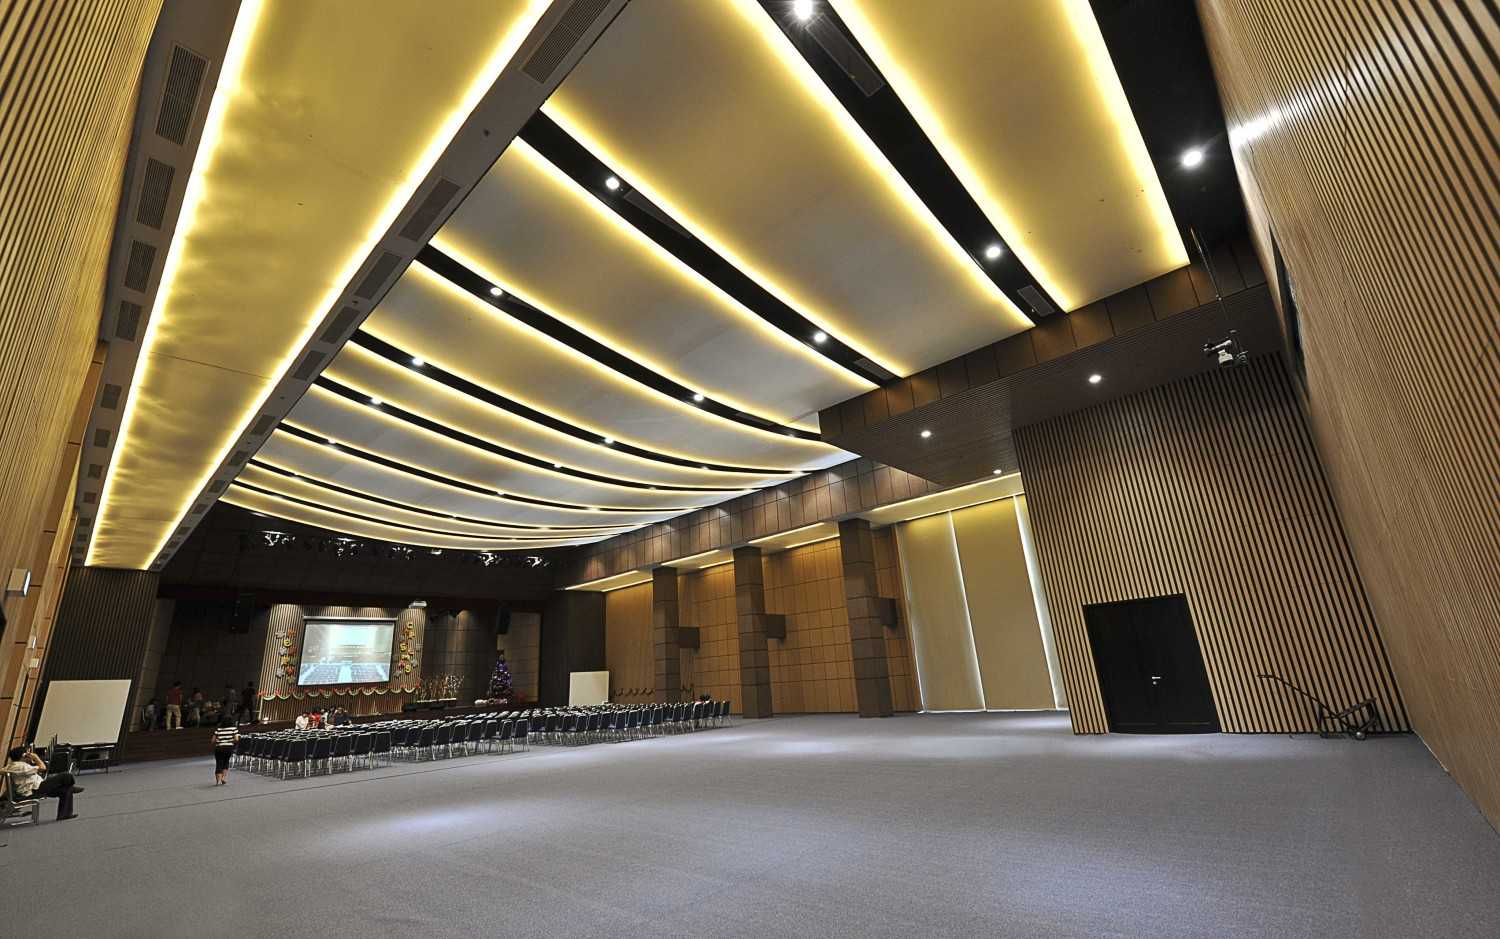 Aqustica Function Hall Bpk Penabur International Jakarta, Indones Jakarta, Indones Photo-29750 Modern 29750